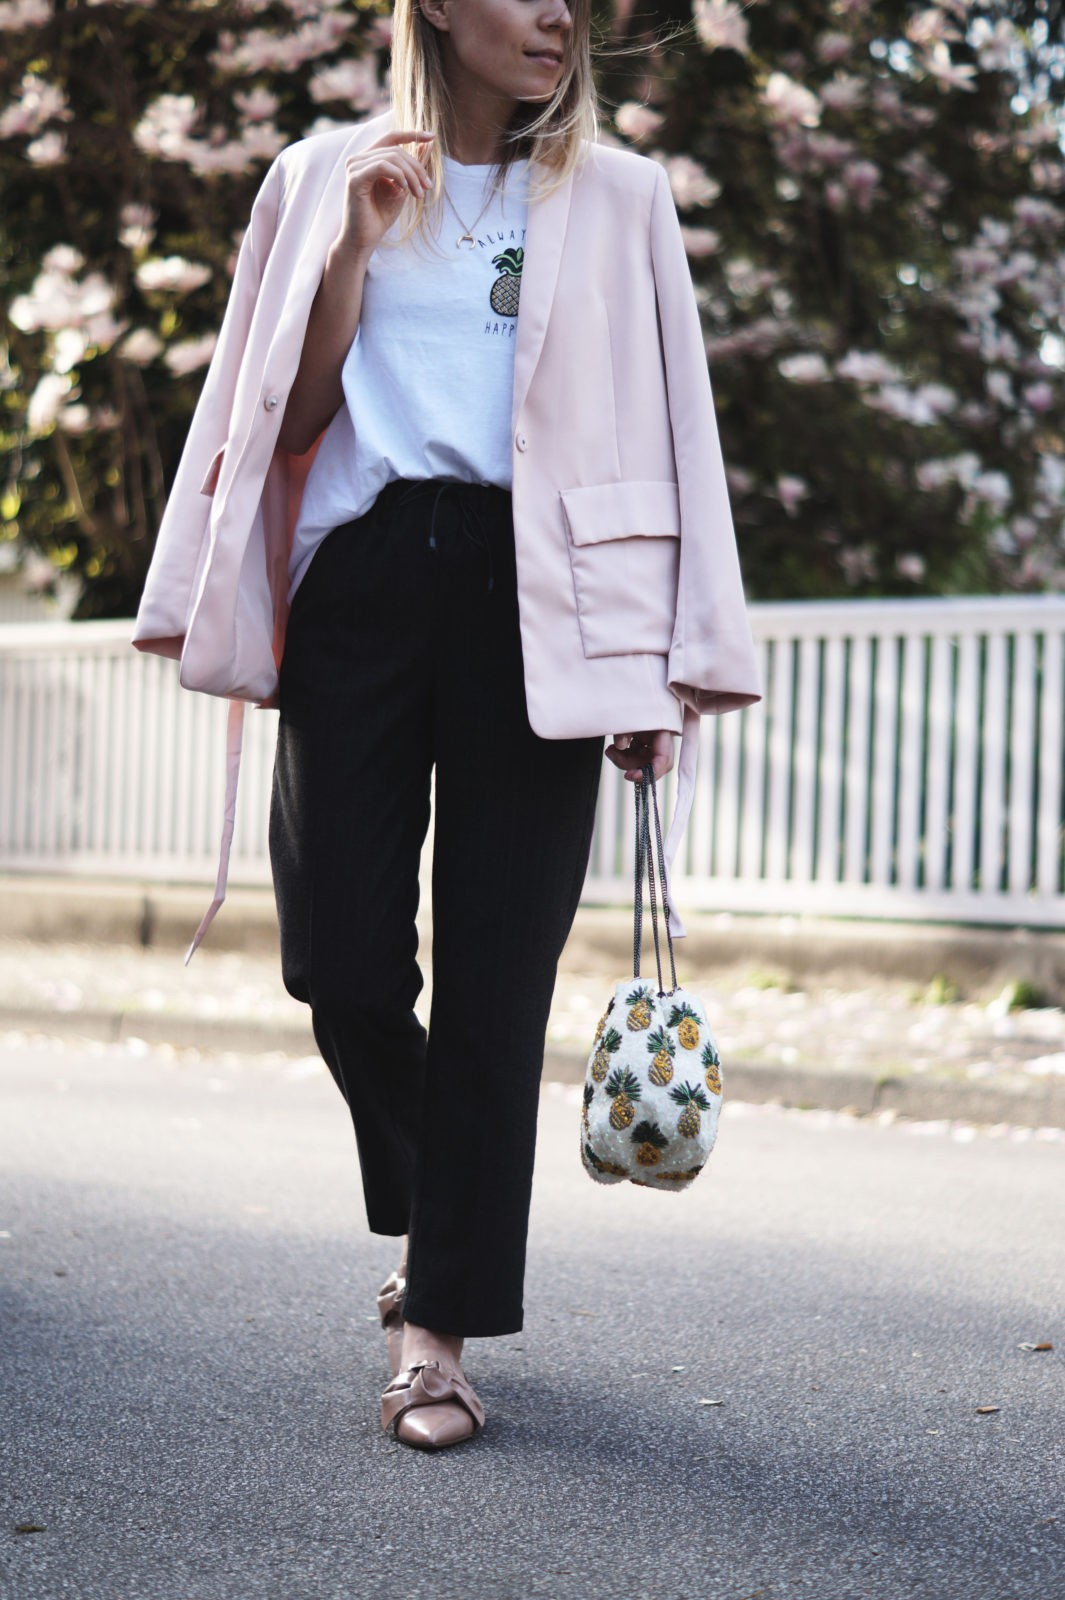 Pineapple Spring Look Always Be Happy Ananas Outfit Statement Shirt Frühling Magnolienbaum rosa Blazer Casual Chic Heidelberg Blossoms 10 Fakten über mich Fashionblogger Sariety Sarah Czok